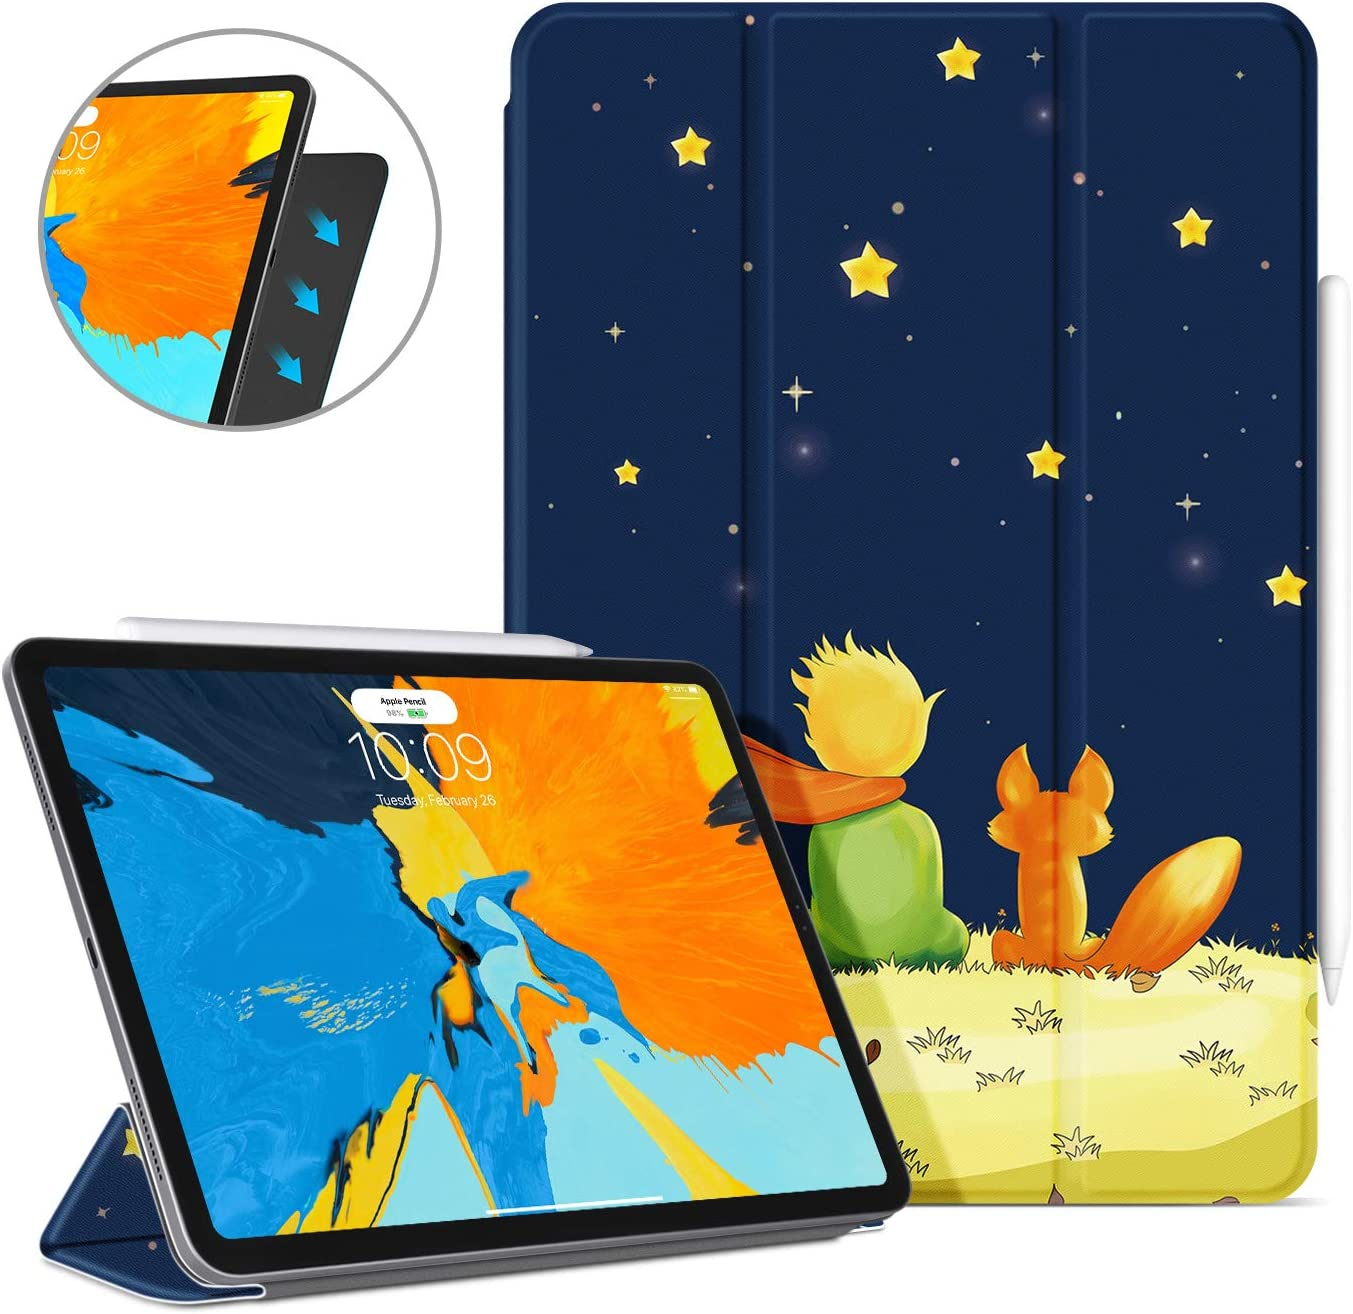 Ayotu Case for iPad Pro 12.9'' 2018(Old Model)-[Support Apple Pencil charging] Strong Magnetic Cover,Slim Tri-fold Stand Case with Auto Wake/Sleep for iPad Pro 12.9 Inch 2018 (3rd Gen),The Boy and Fox